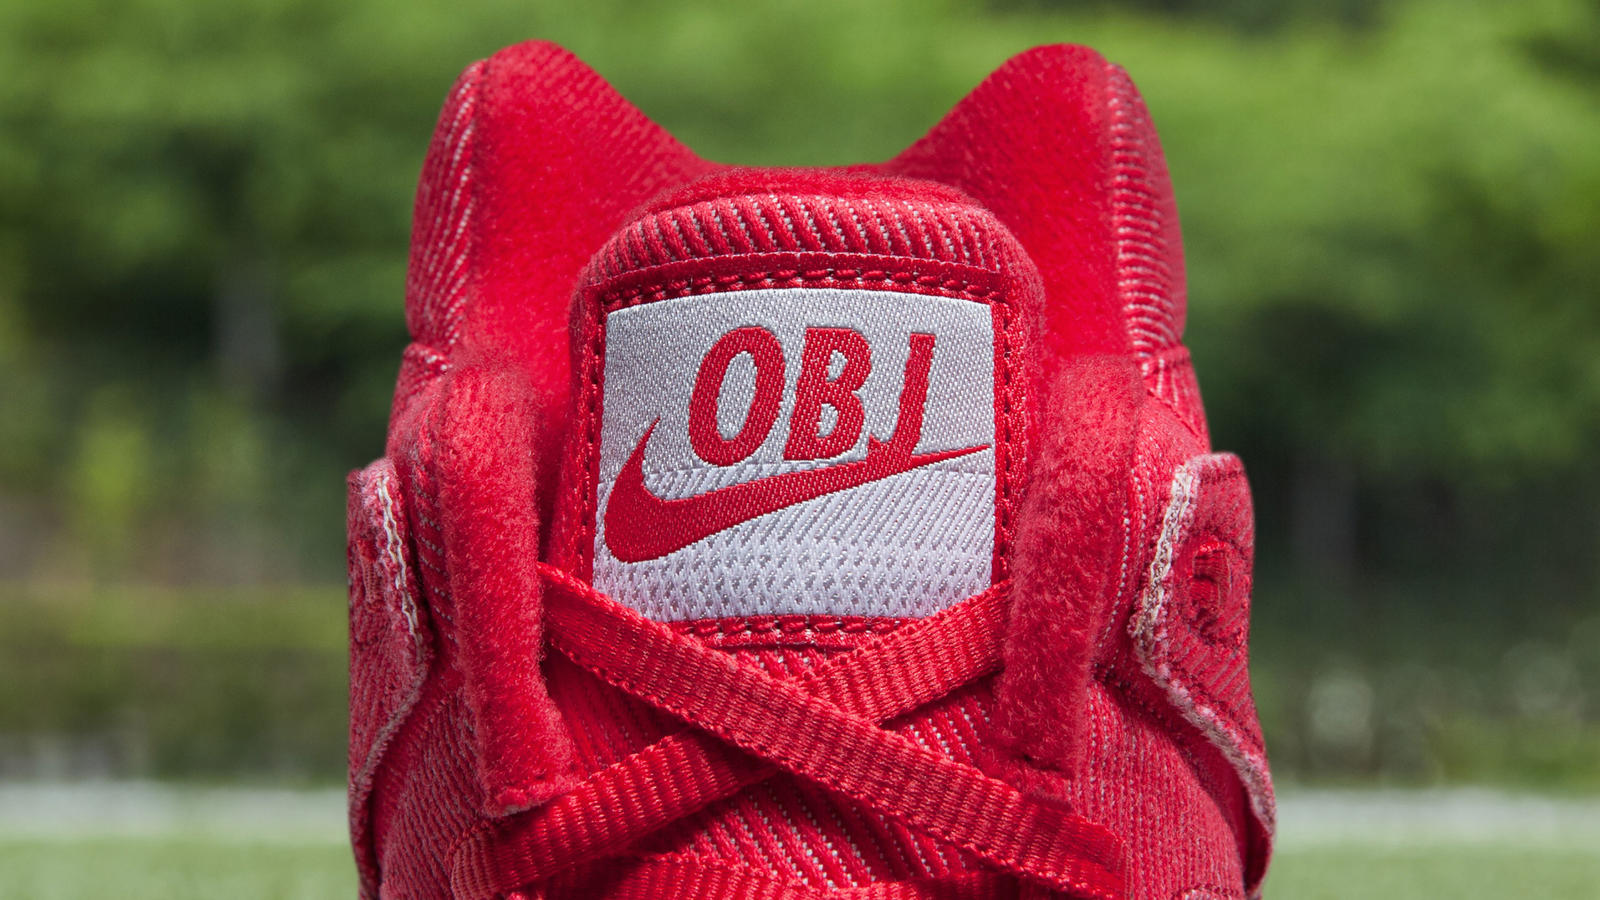 Featuredfootwear obj pregame 2018 181 re hd 1600